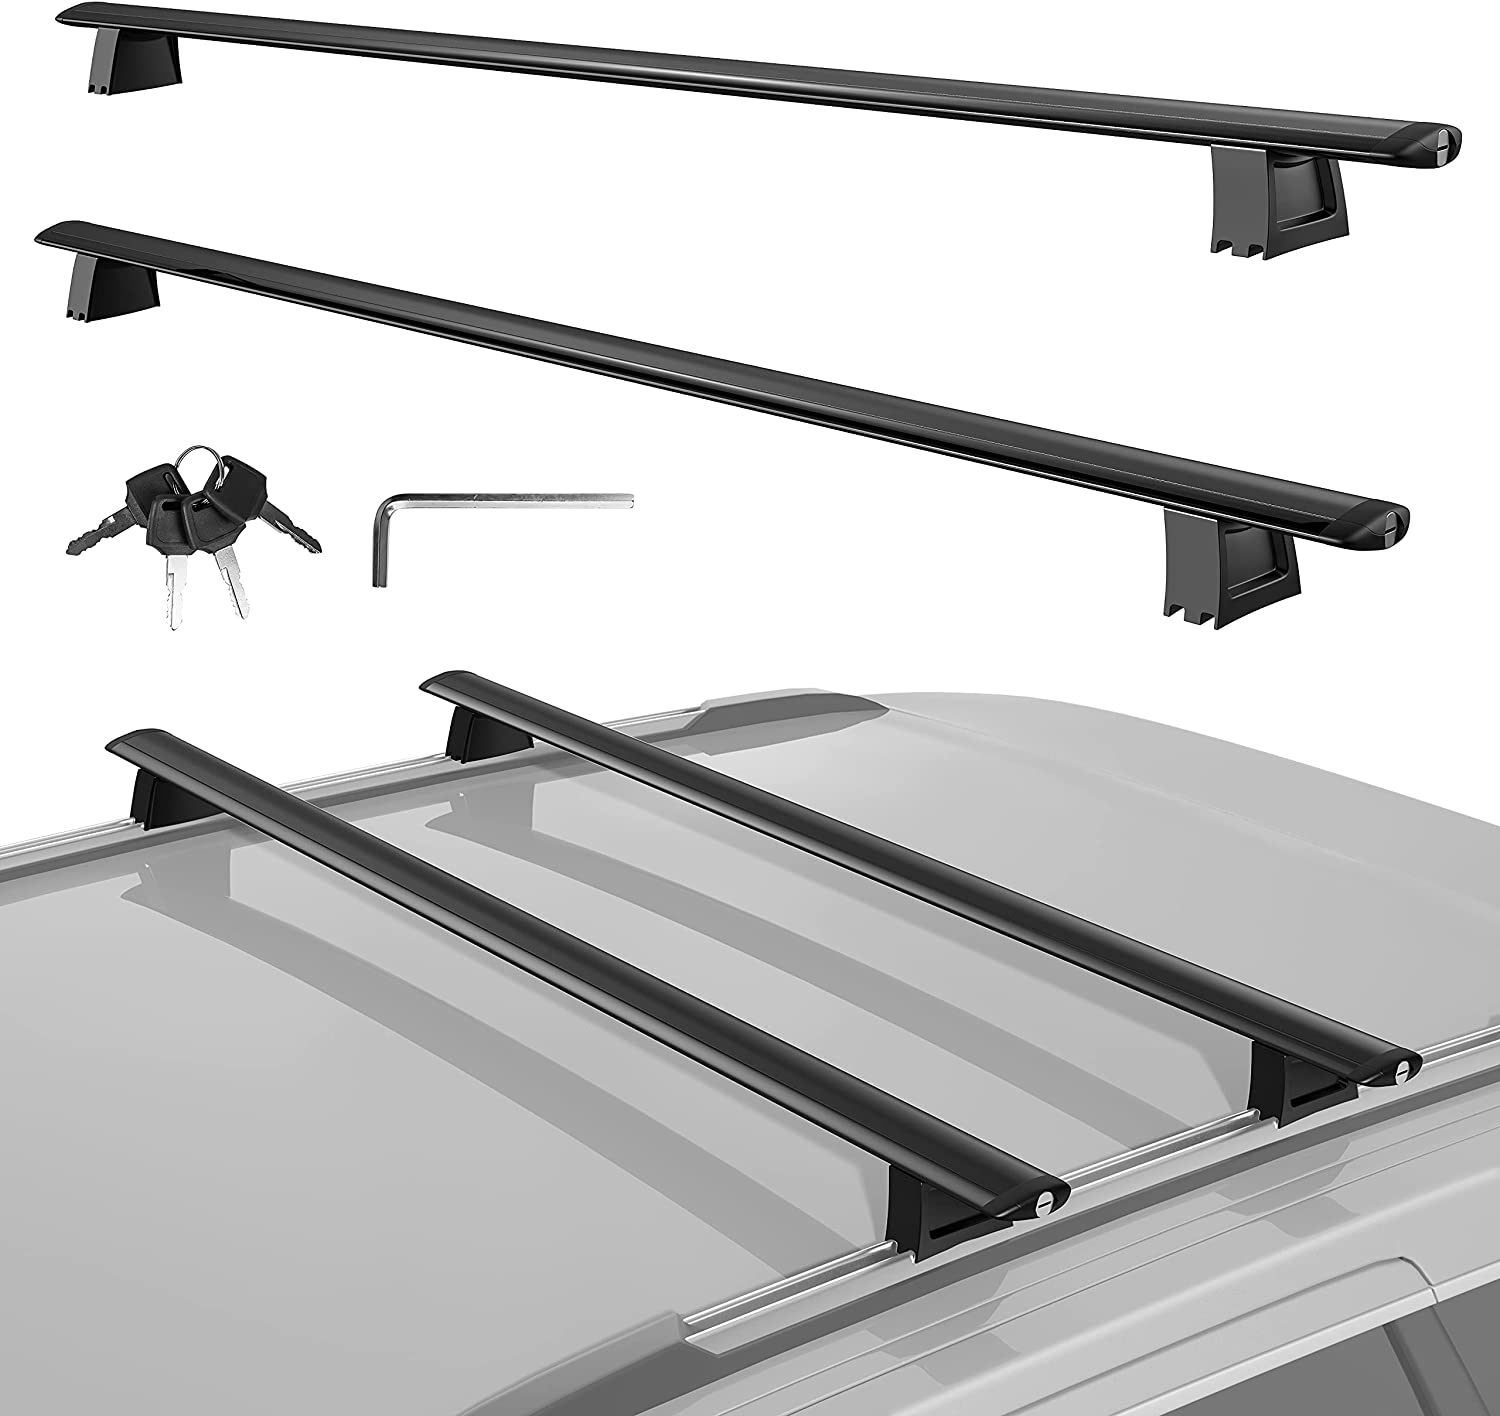 MOSTPLUS Roof shipfree Rack Cross Bar for Compatible 100% quality warranty! Gr Jeep Luggage